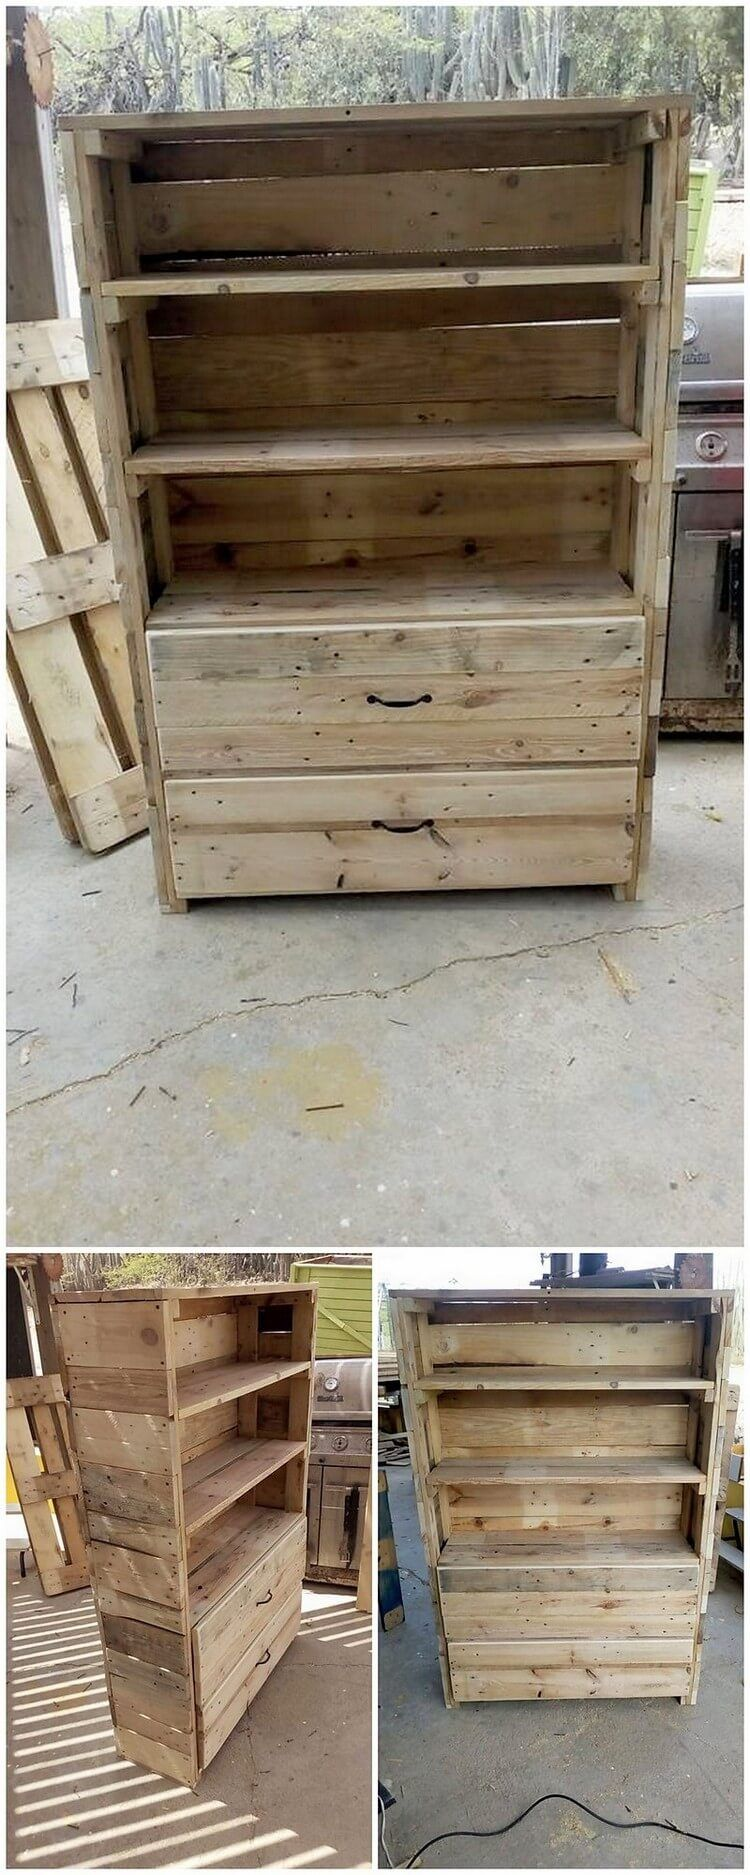 This uniquely designed wood pallet creation is